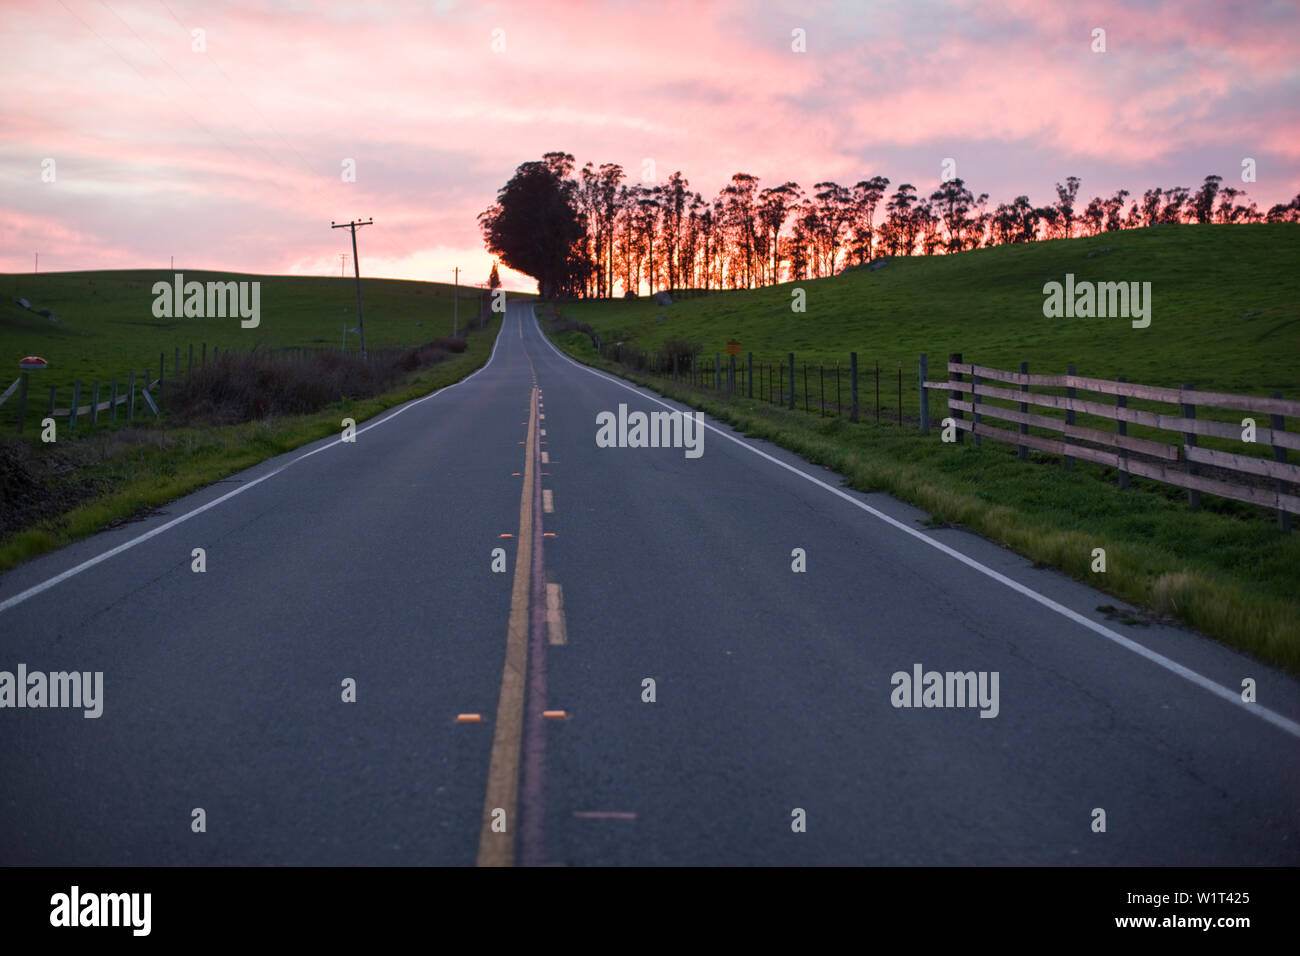 Road stretching into distance at sunset Stock Photo